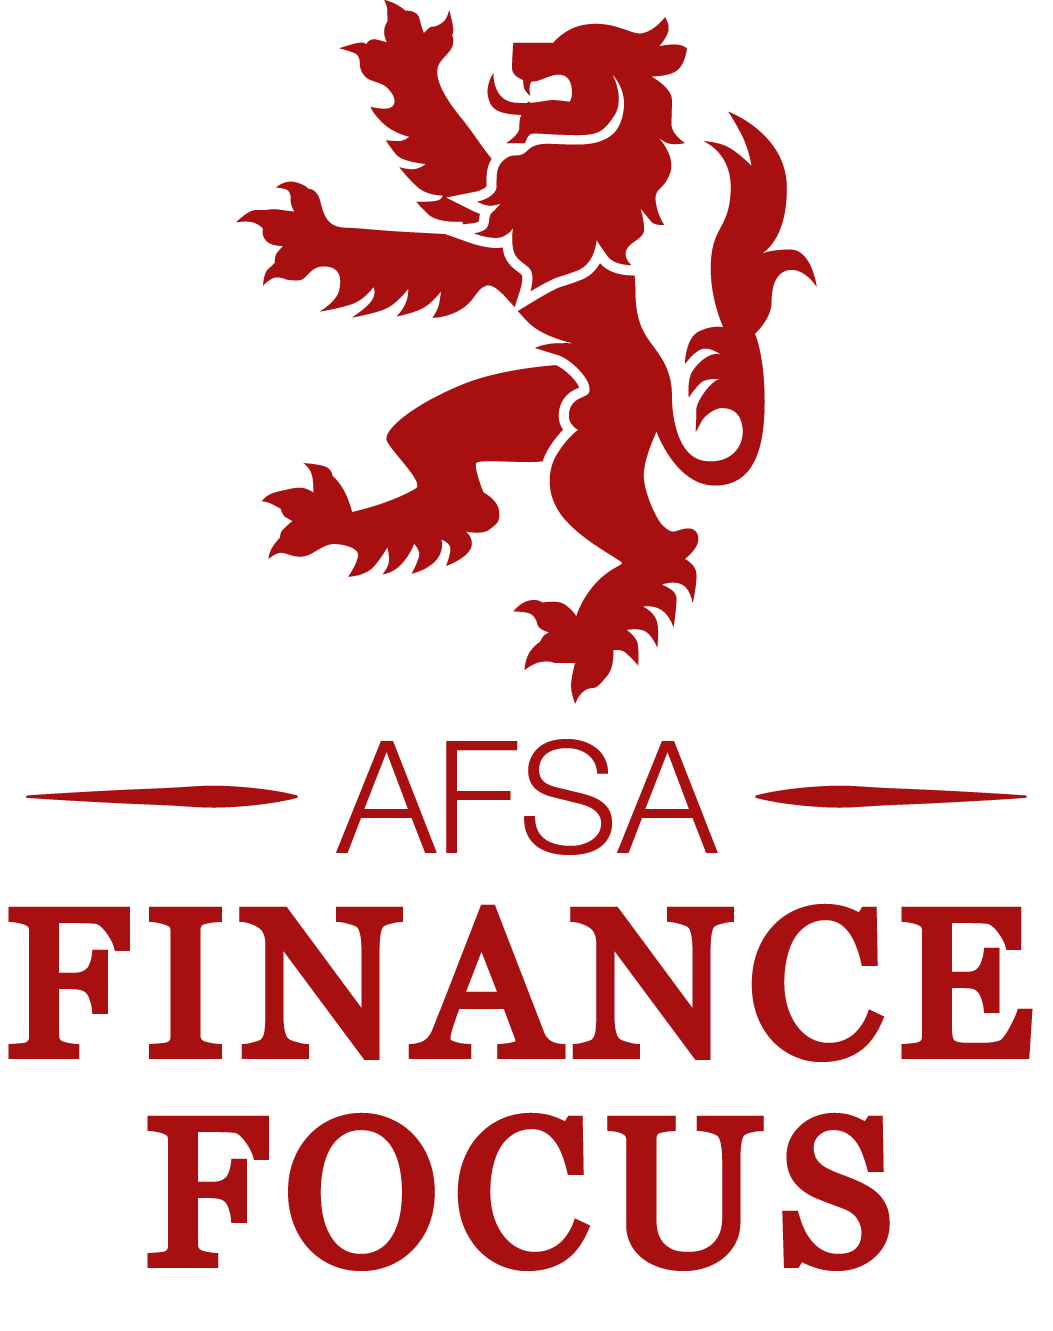 finance-focus.png